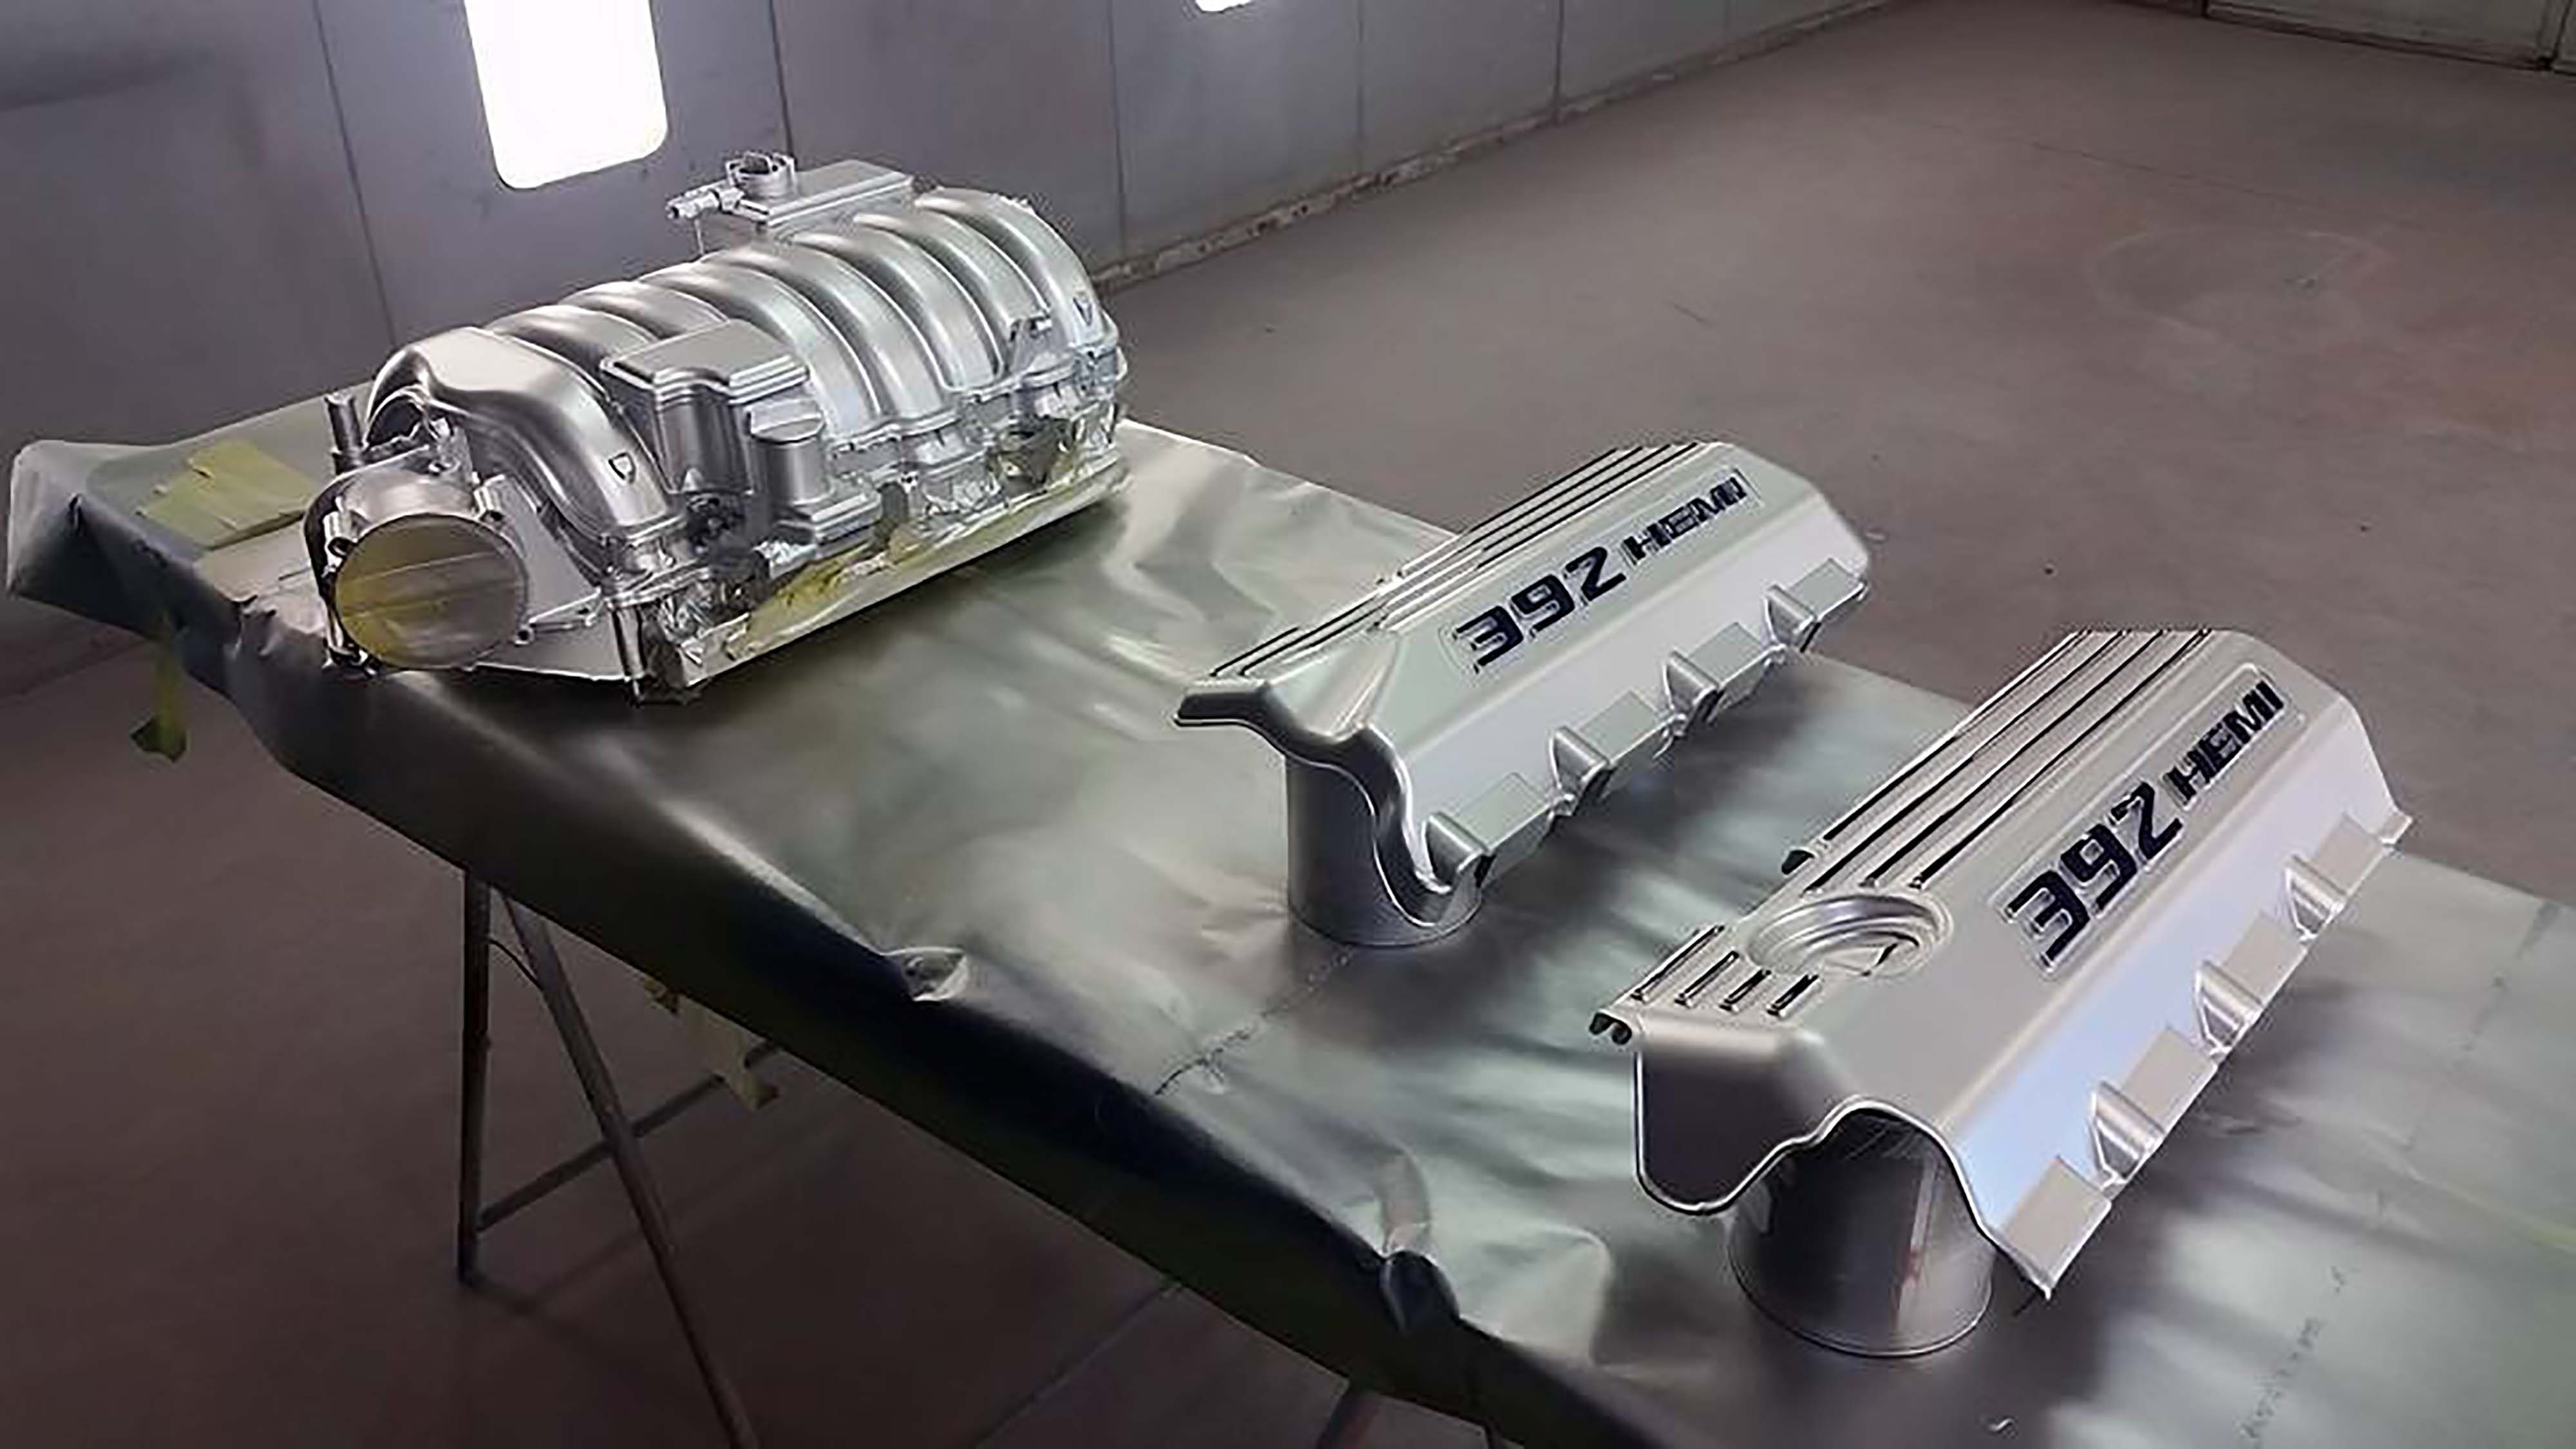 To drop a late-model 6.4L Hemi crate motor into the Charger was a departure from tradition, but during paint, we decided to take it a step further. Webb had a little silver and blue leftover, so we had him paint the intake and coil covers in reverse to the factory, using our car's color scheme.